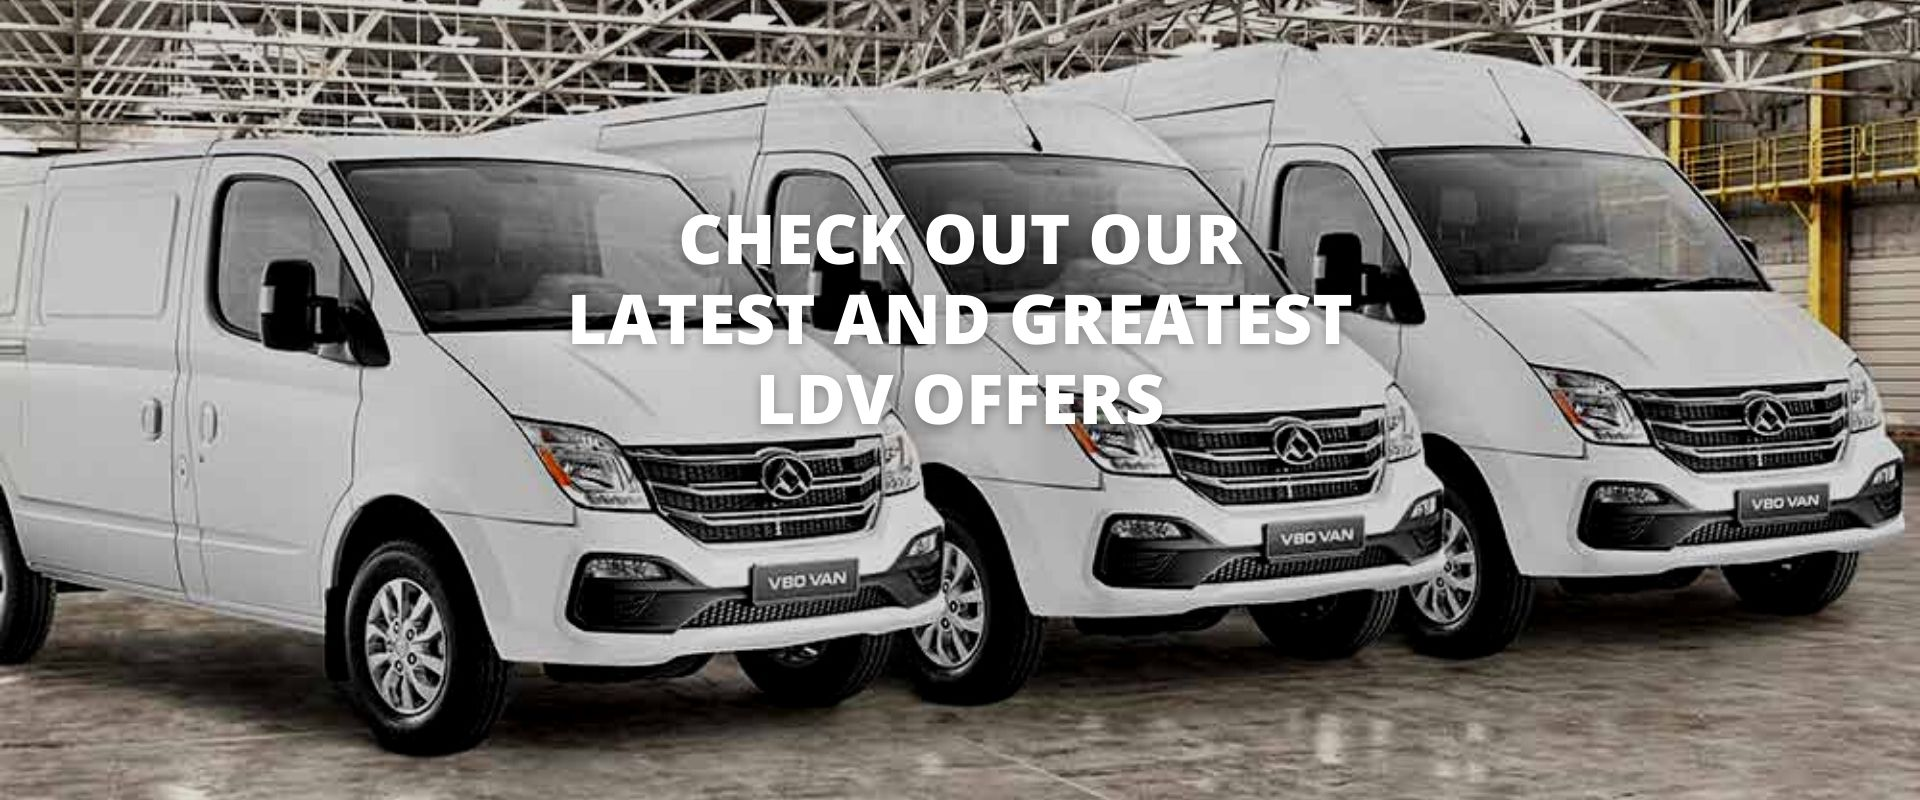 See Our Latest LDV Offers